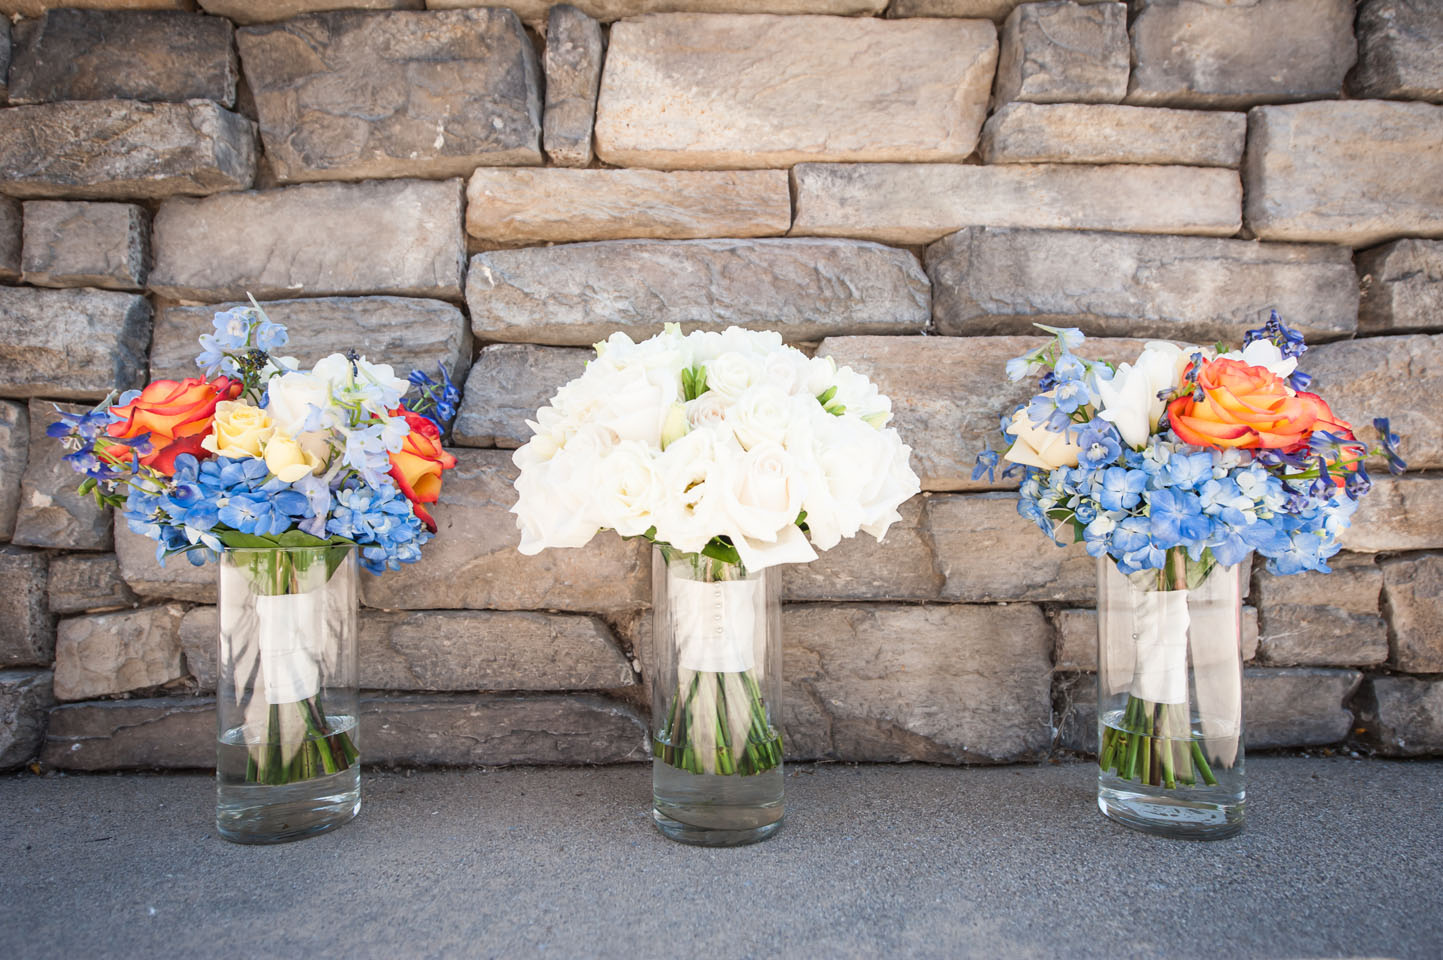 Flowers for the bridal party table